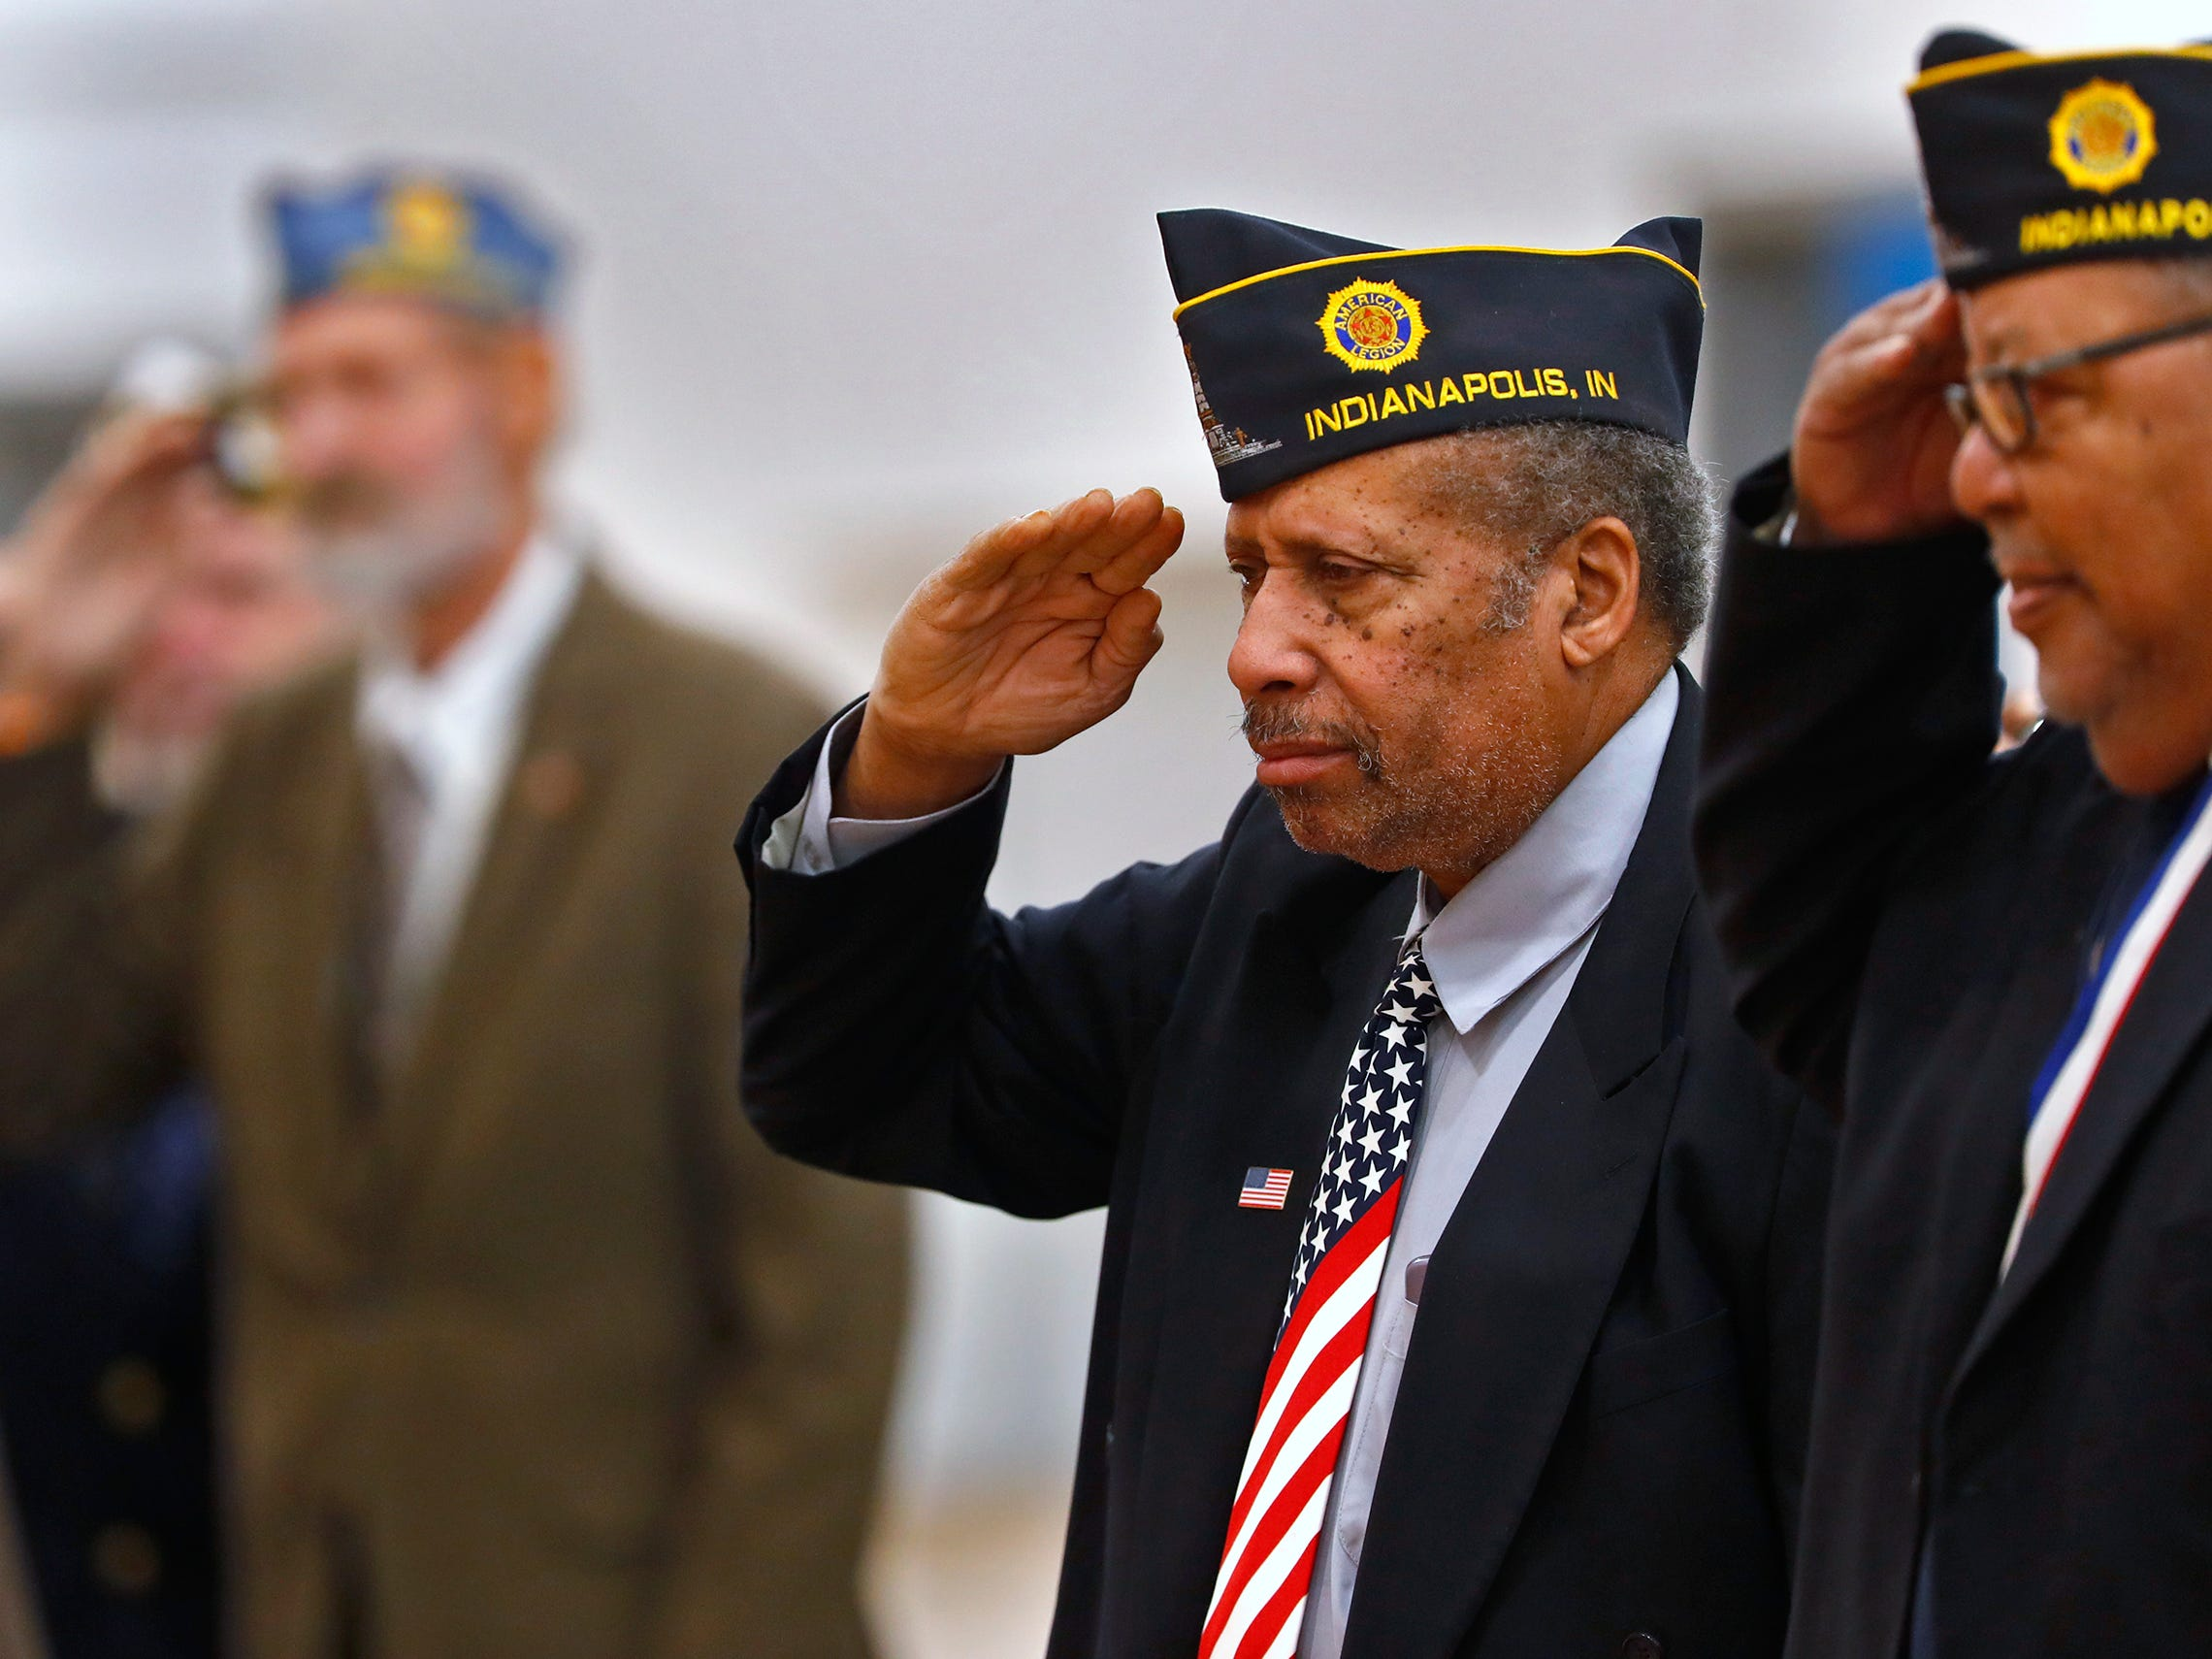 American Legion members salute as the colors are posted during the Pearl Harbor Day Remembrance at Riverside High School, Friday, Dec. 7, 2018.  The former Heslar Naval Armory used to host the event to remember those who died and to honor those who survived in the Dec. 7, 1941 Japanese attack on Pearl Harbor which plunged the United States into World War II.